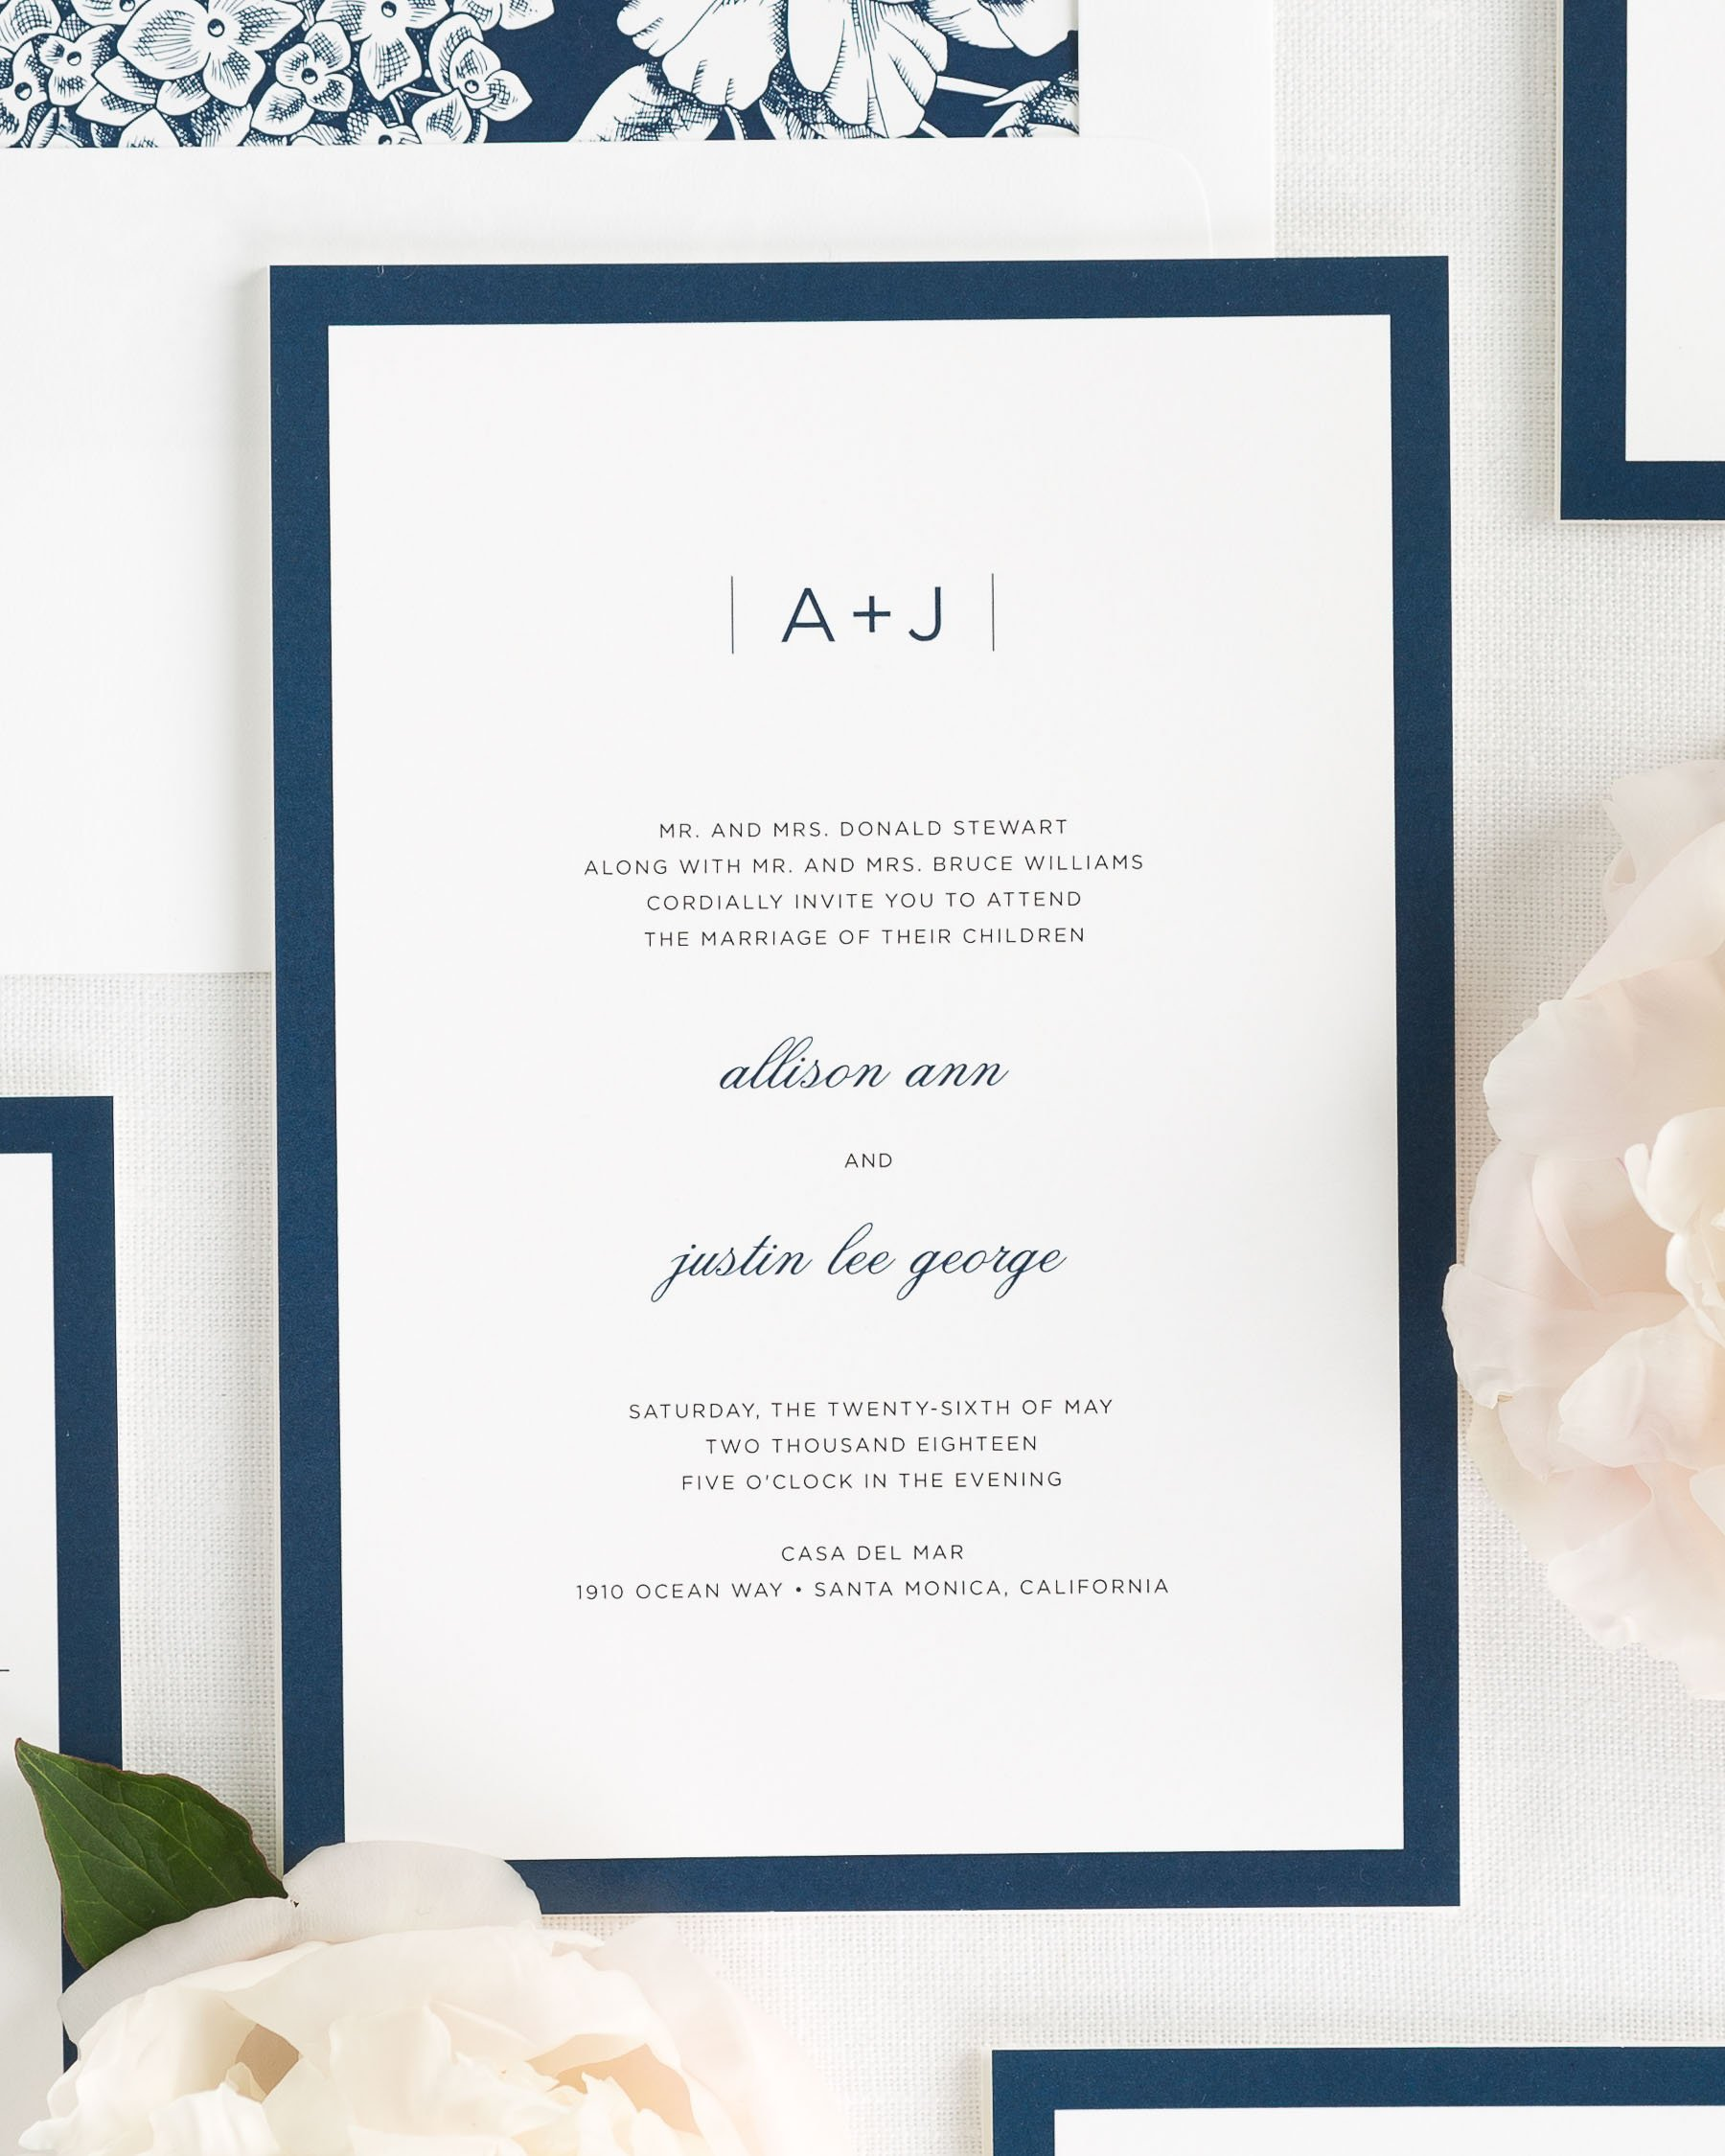 You Are Cordially Invited To Attend My Sister S Wedding | Dulahotw.co